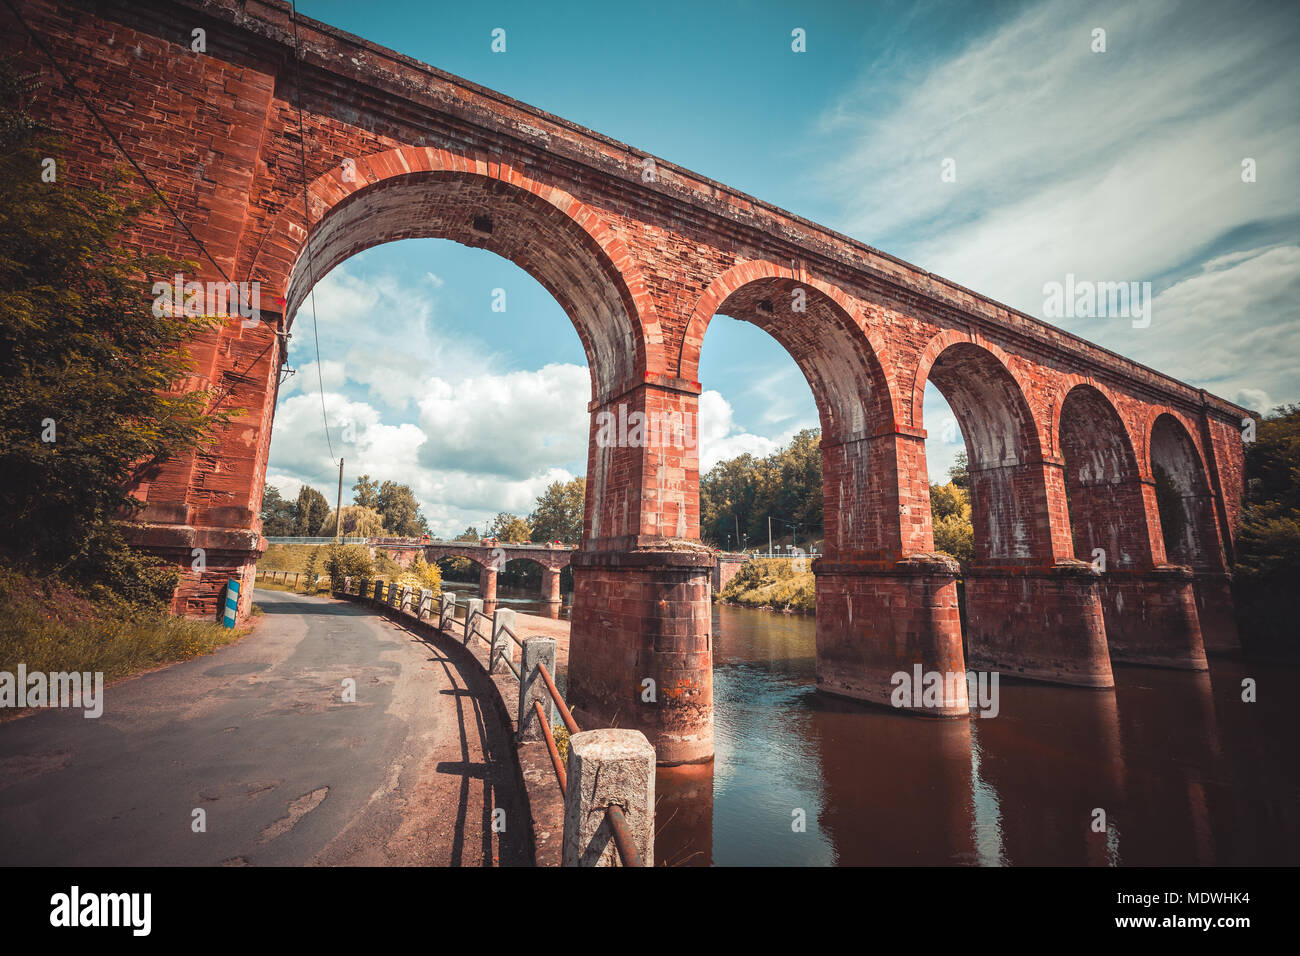 Huge arch train bridge built over Sorgue river in France - Stock Image